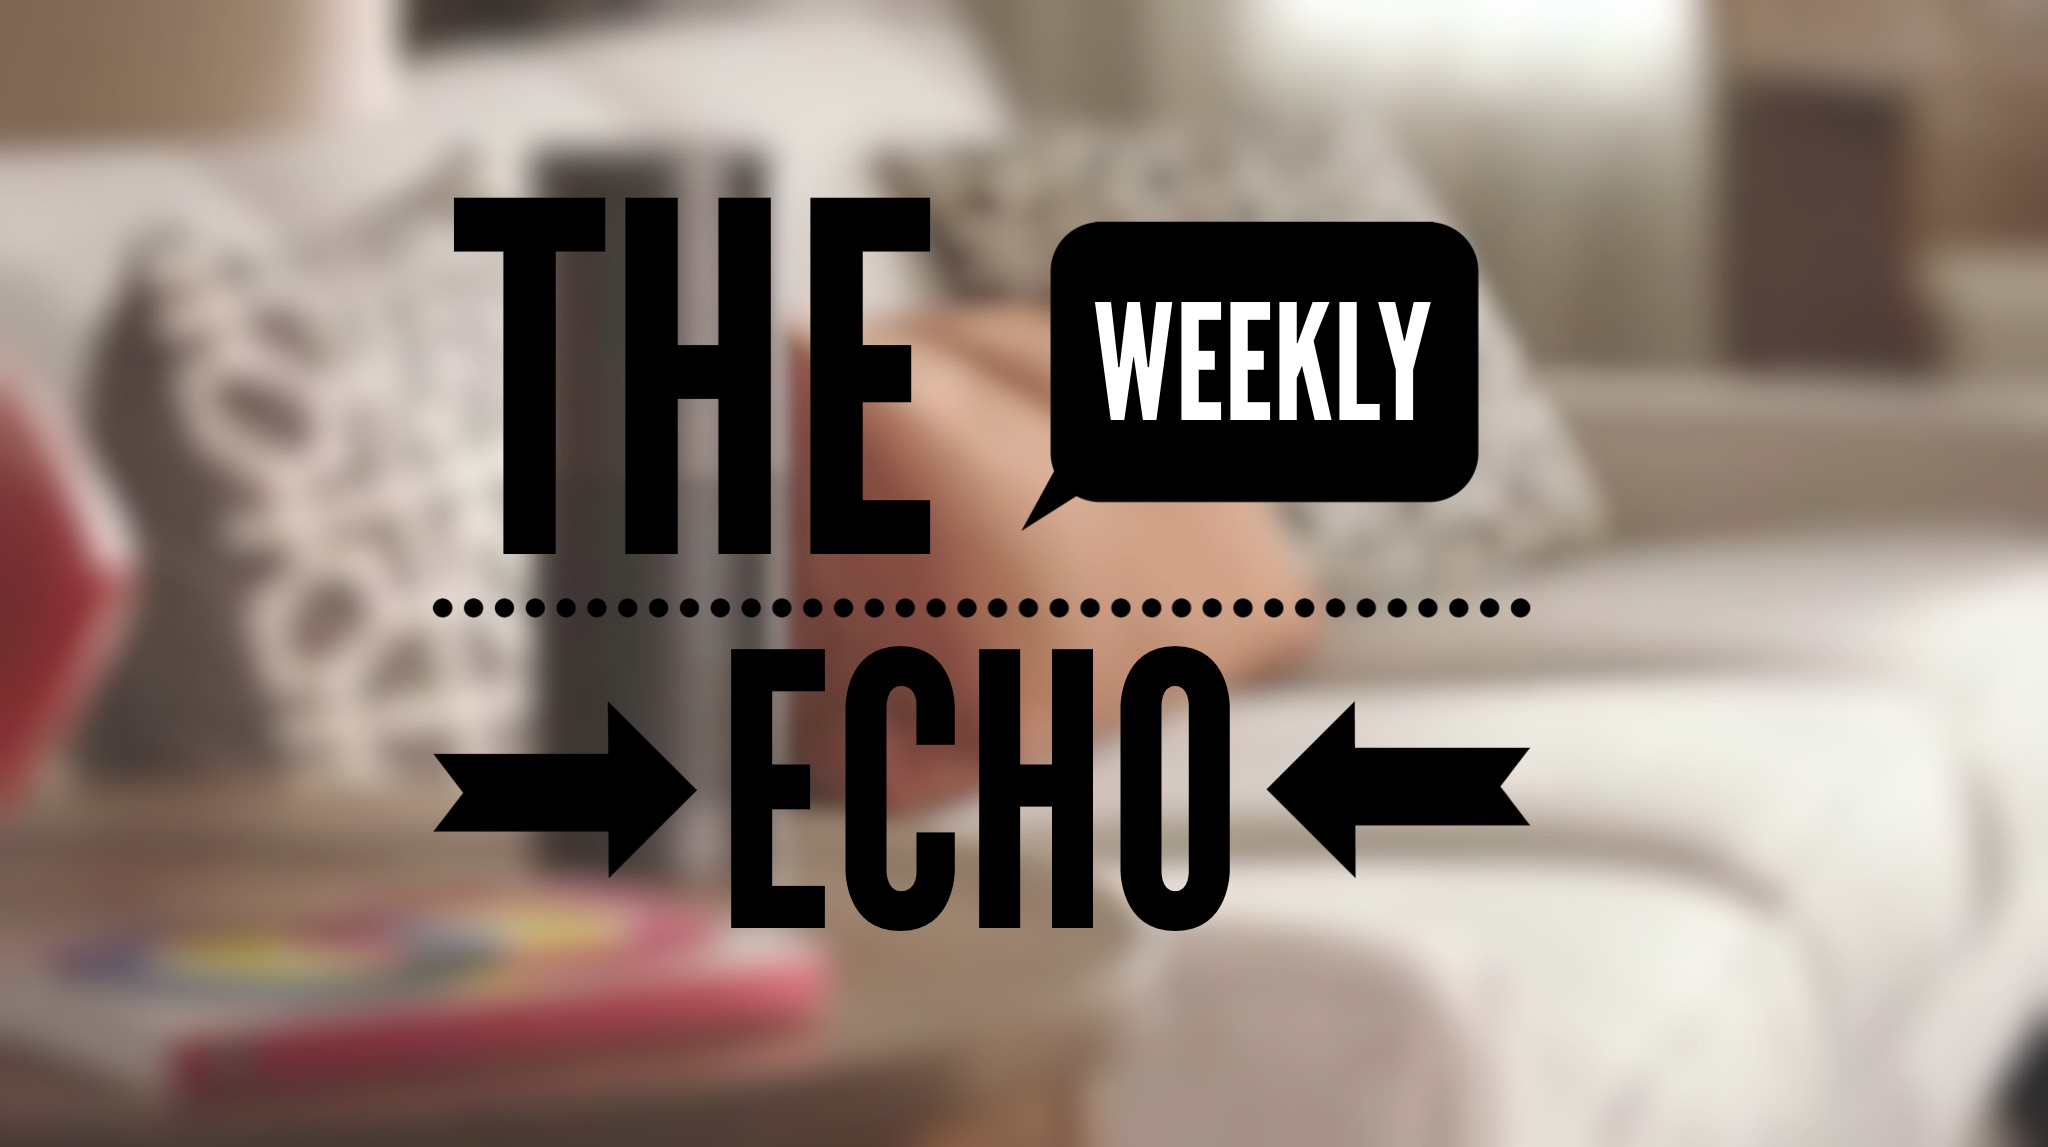 The Weekly Echo: Alexa can get confused sometimes